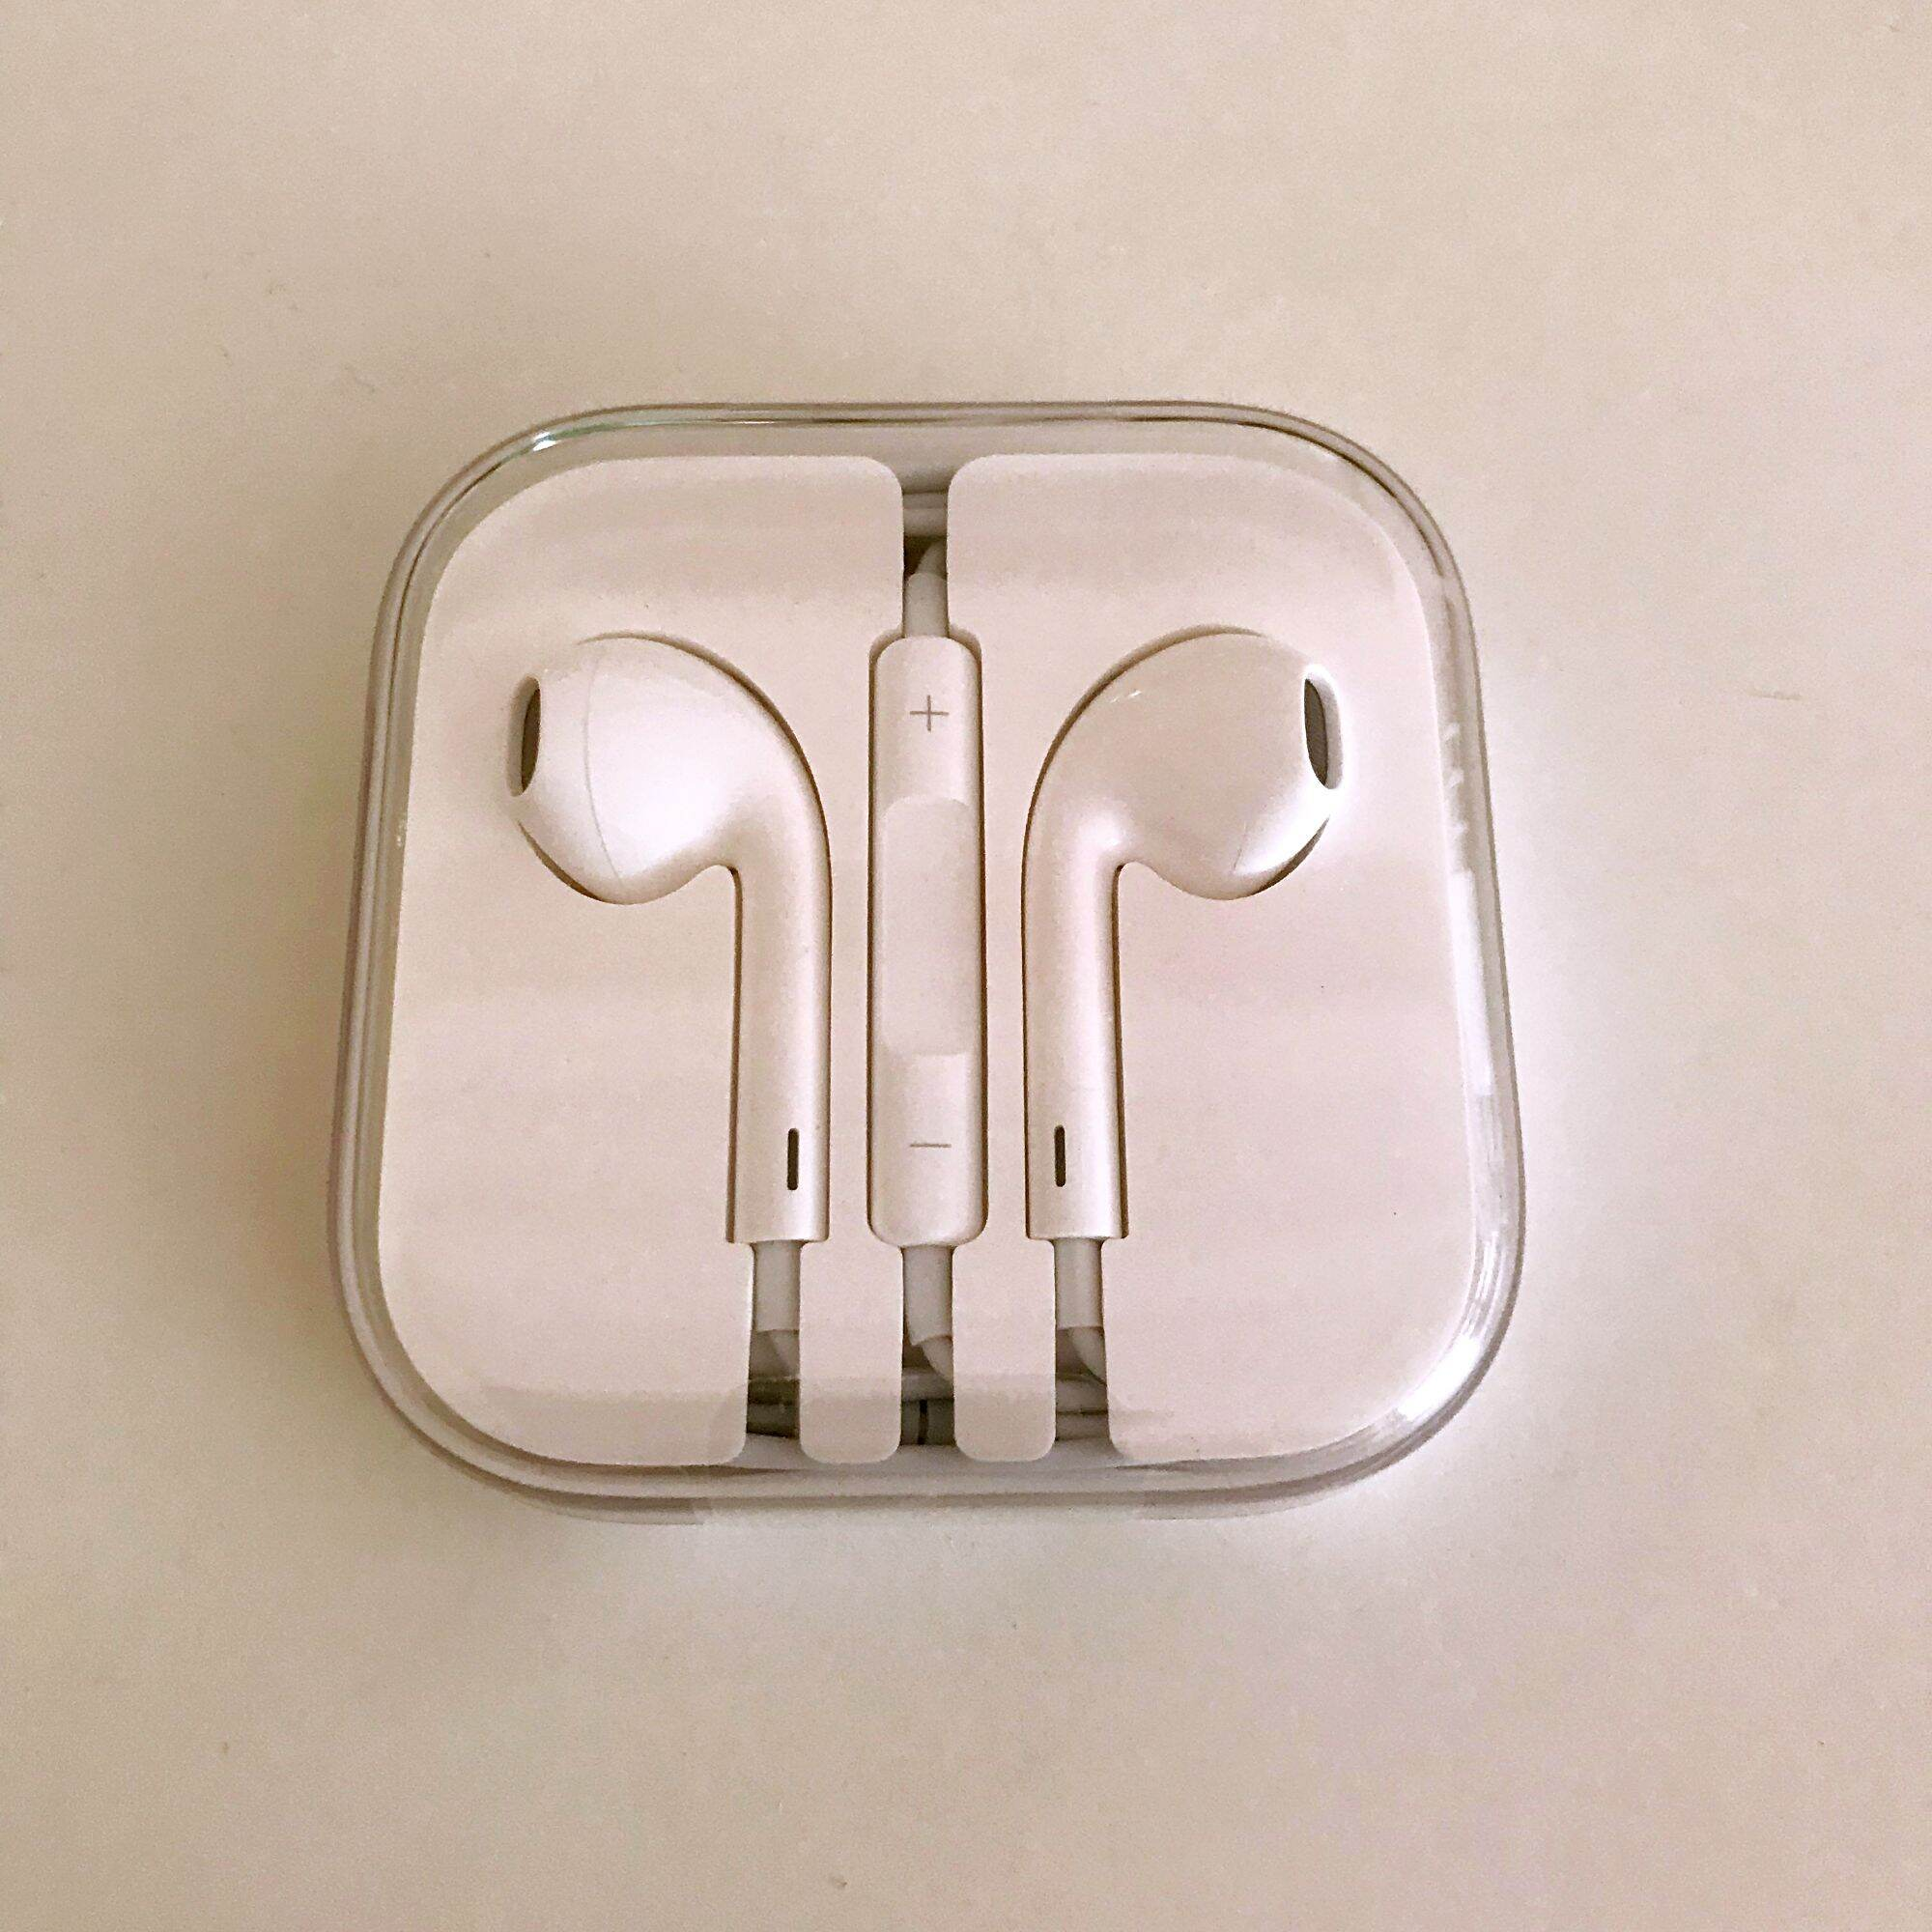 (SG Stock) iPhone 6/6s Earpiece  Took from iphone box  suitable for iphone 6, 6,s 6 plus, 6s Plus etc  #iphone6 #iphone accessories #iphone earpiece  #iphone earphones Singapore